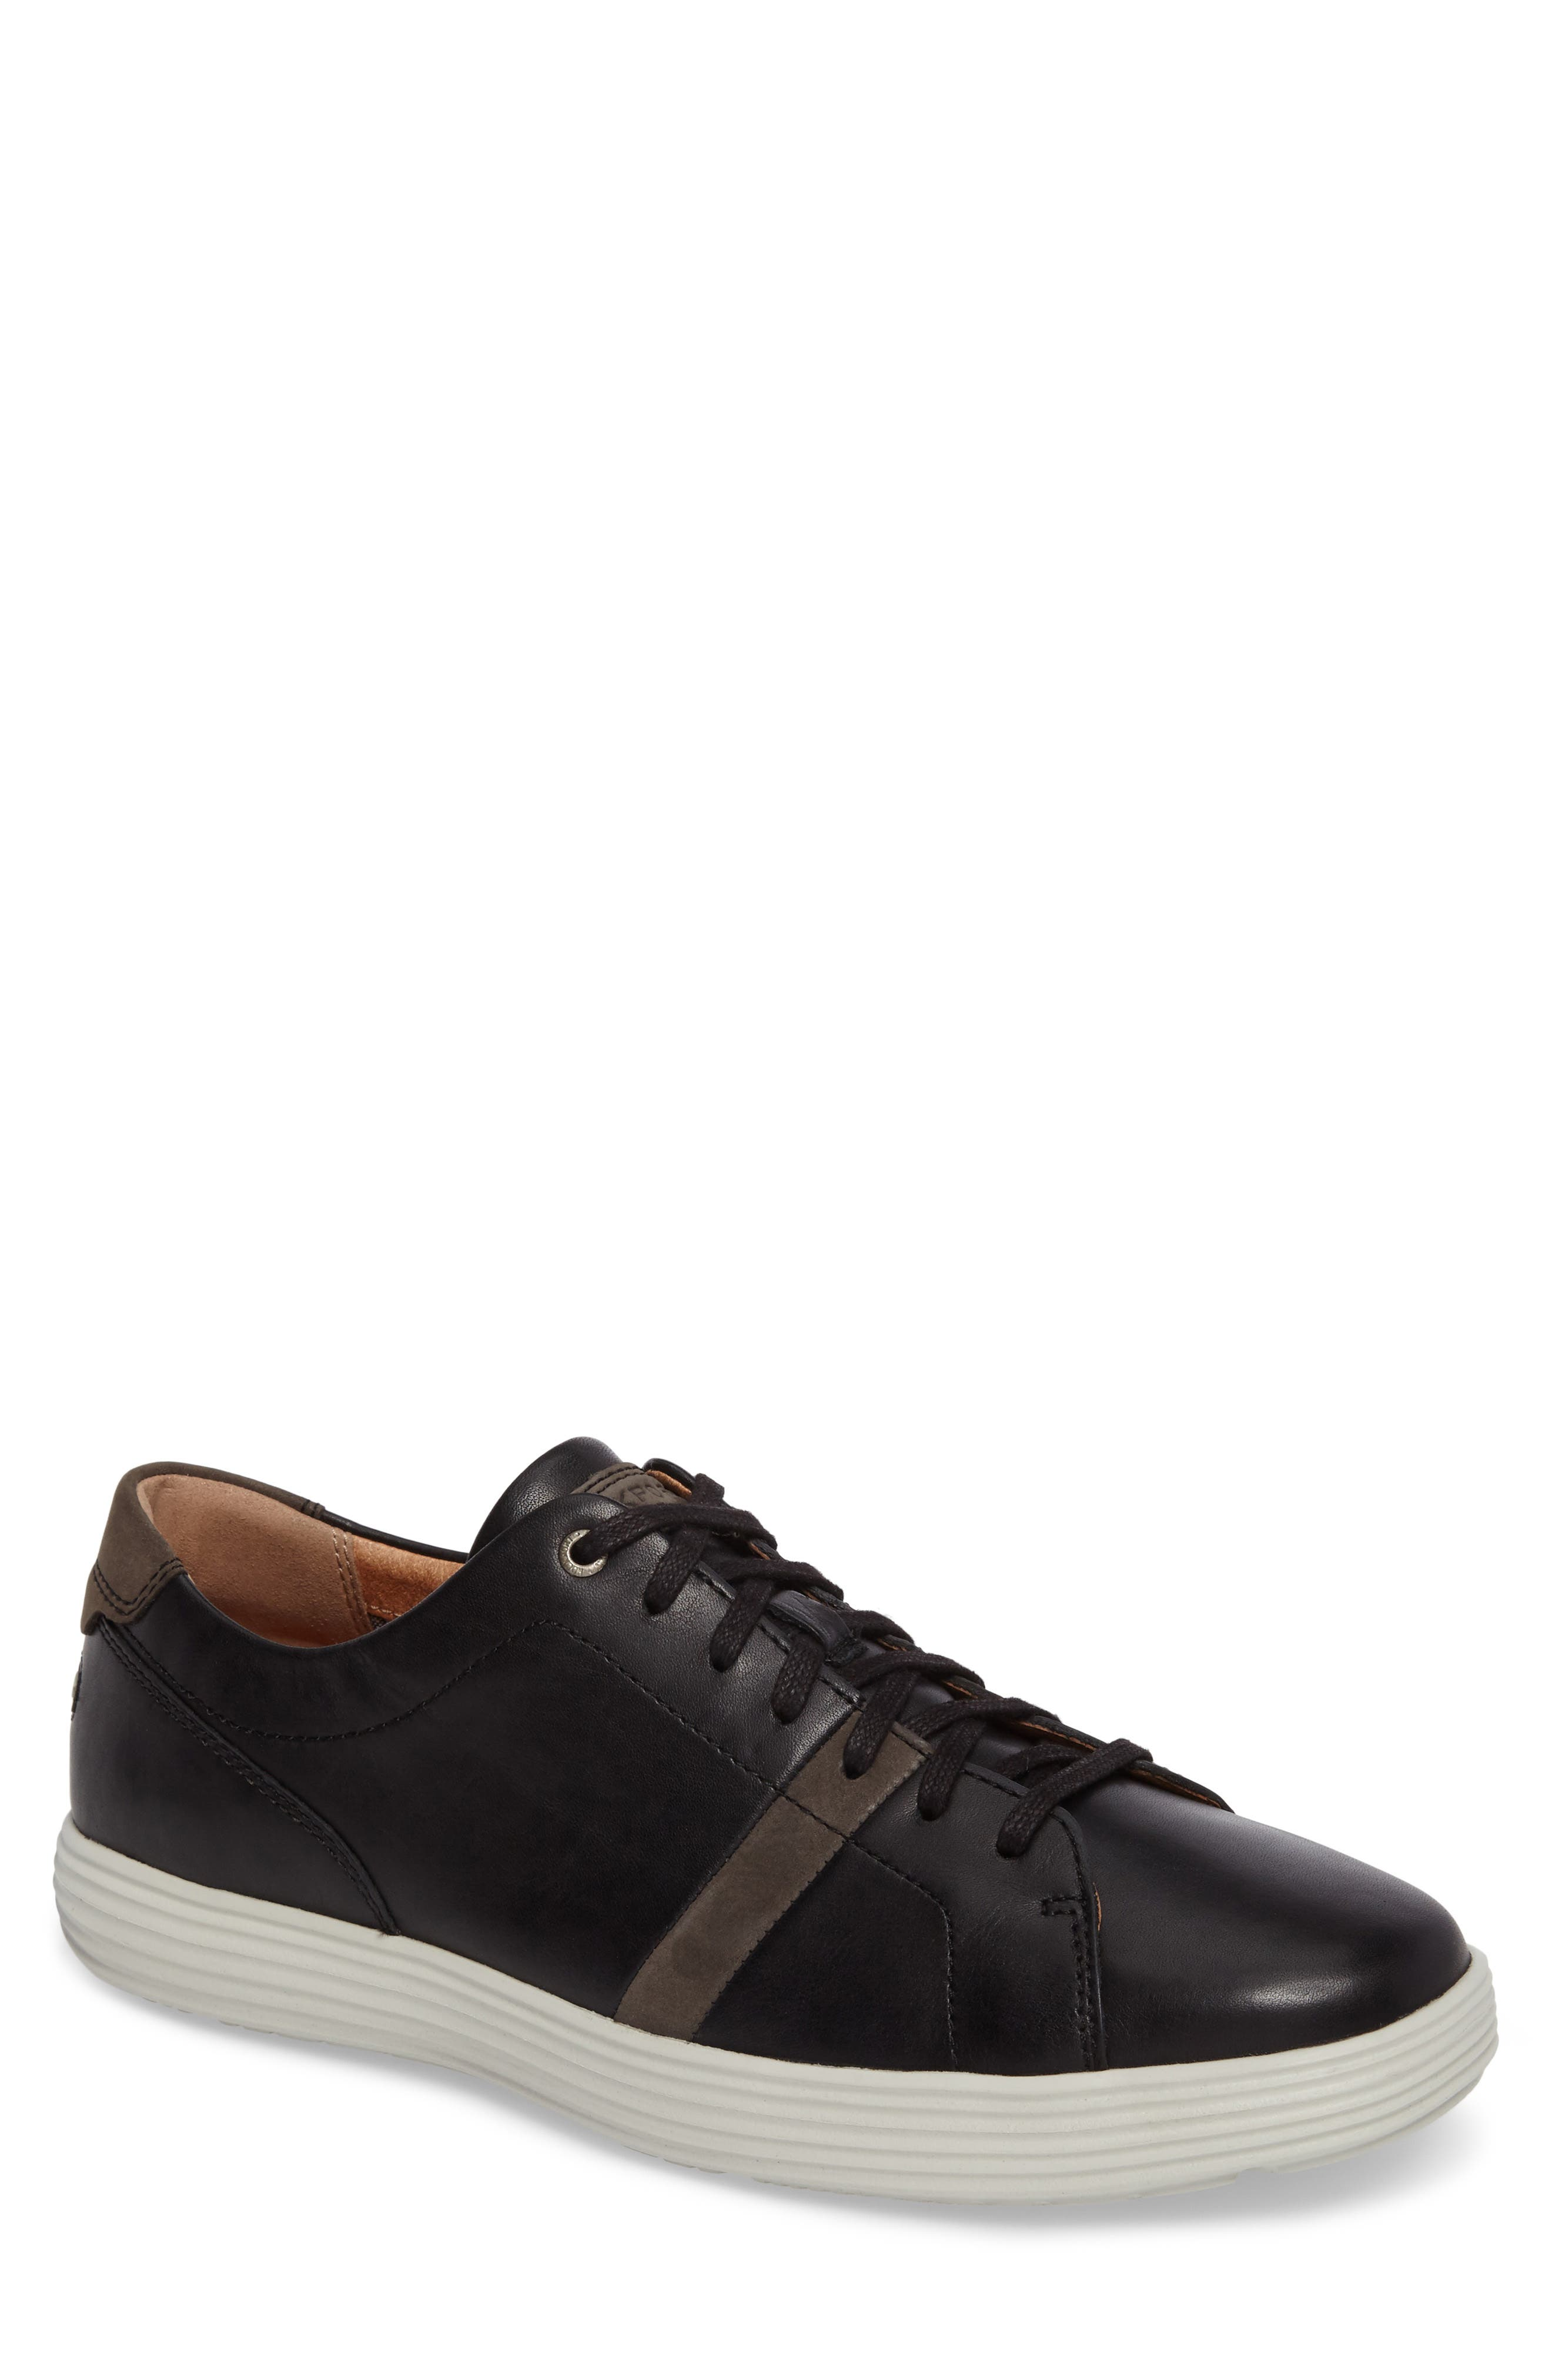 Rockport Thurston Sneaker (Men)